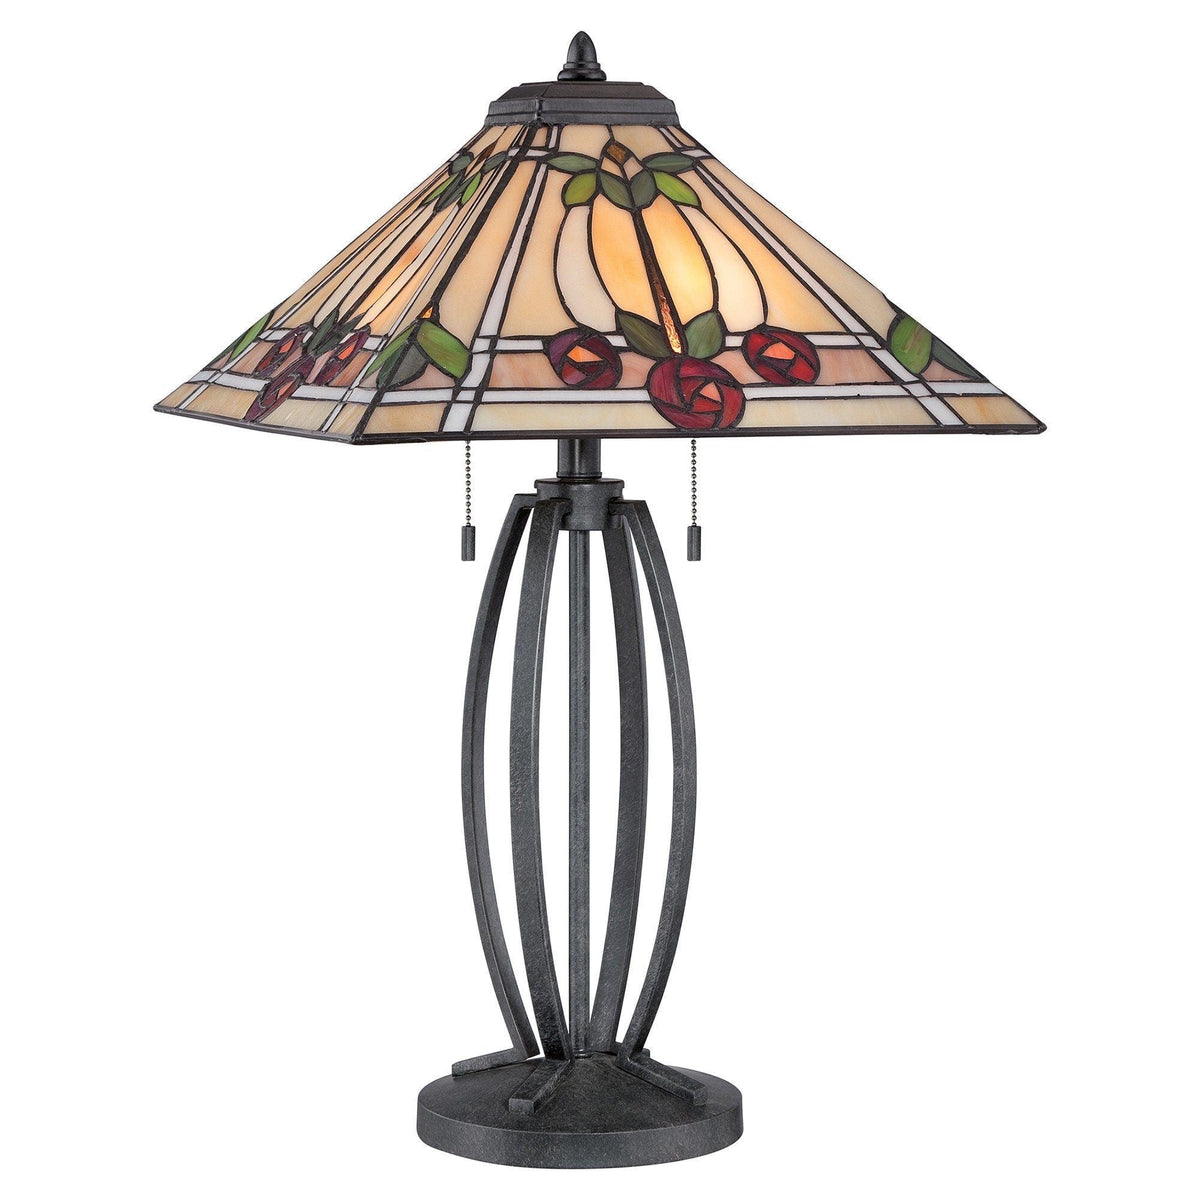 Large Tiffany Lamps - Quoizel Tiffany Ruby Large Table Lamp QZ/RUBY/TL